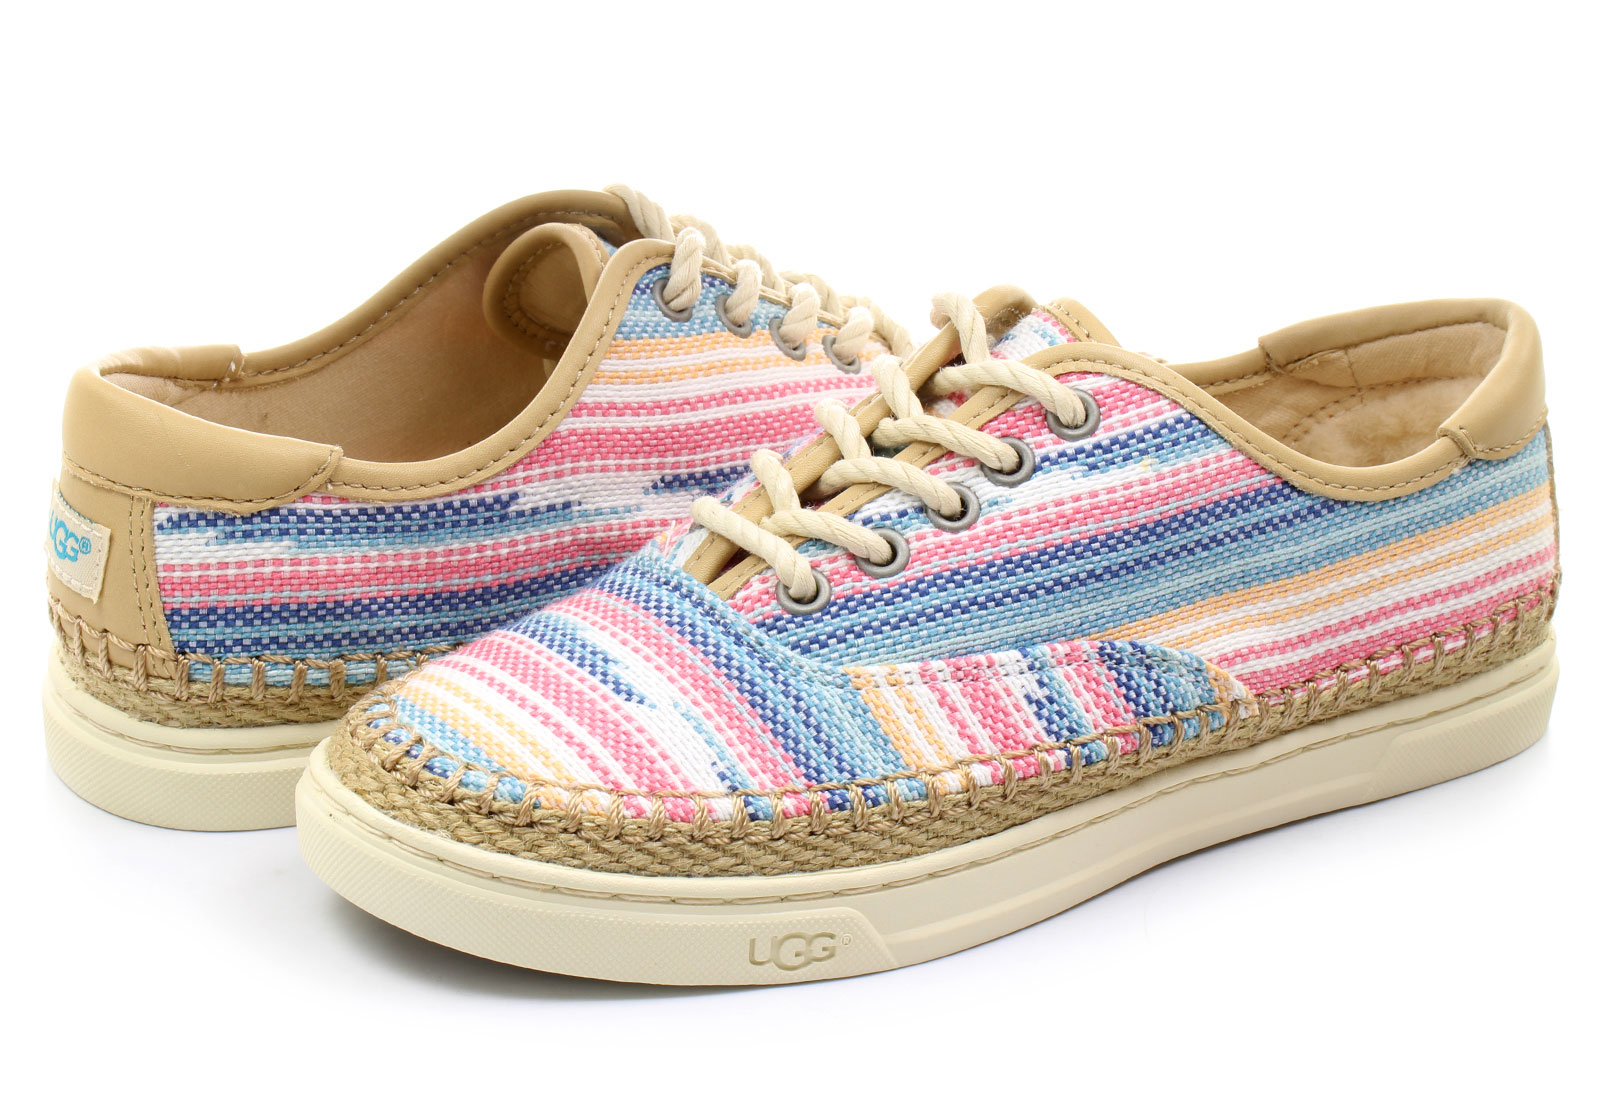 cd54513fb82 Ugg Shoes - Eyan Ii Serape - 1010656-SMS - Online shop for sneakers, shoes  and boots